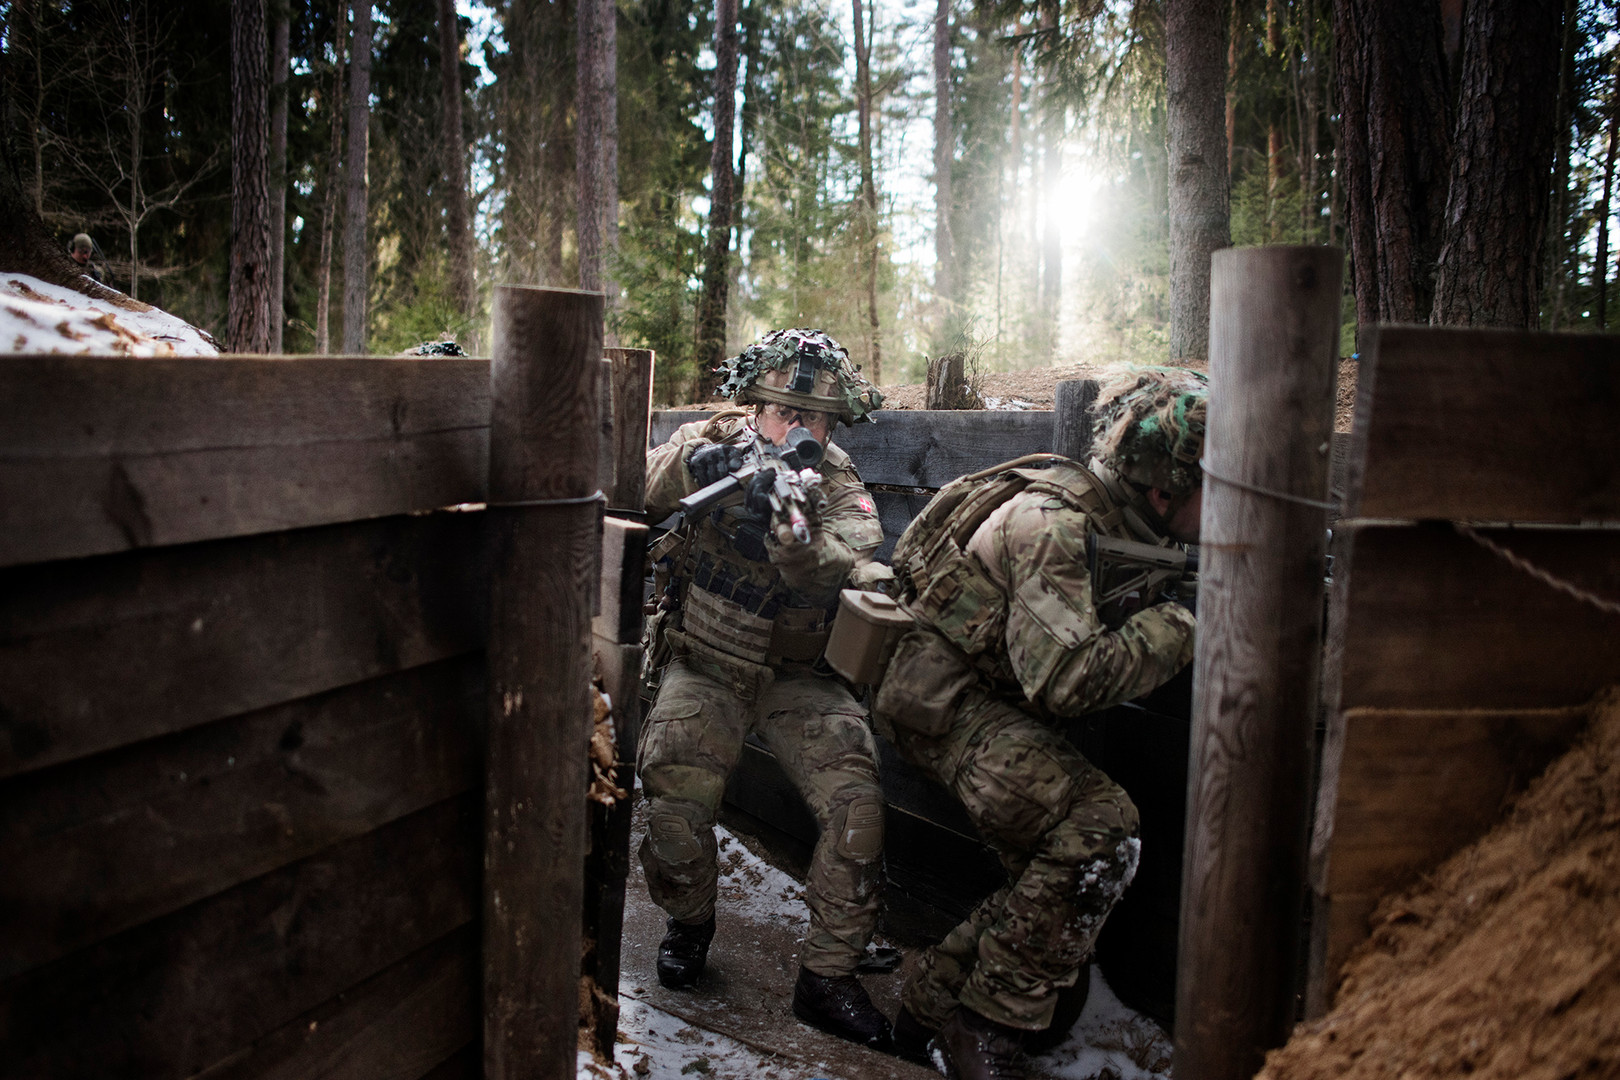 Soldier from Danish first Division of First Armored Infantry Company, during an exercise where a trench must be stormed and taken.